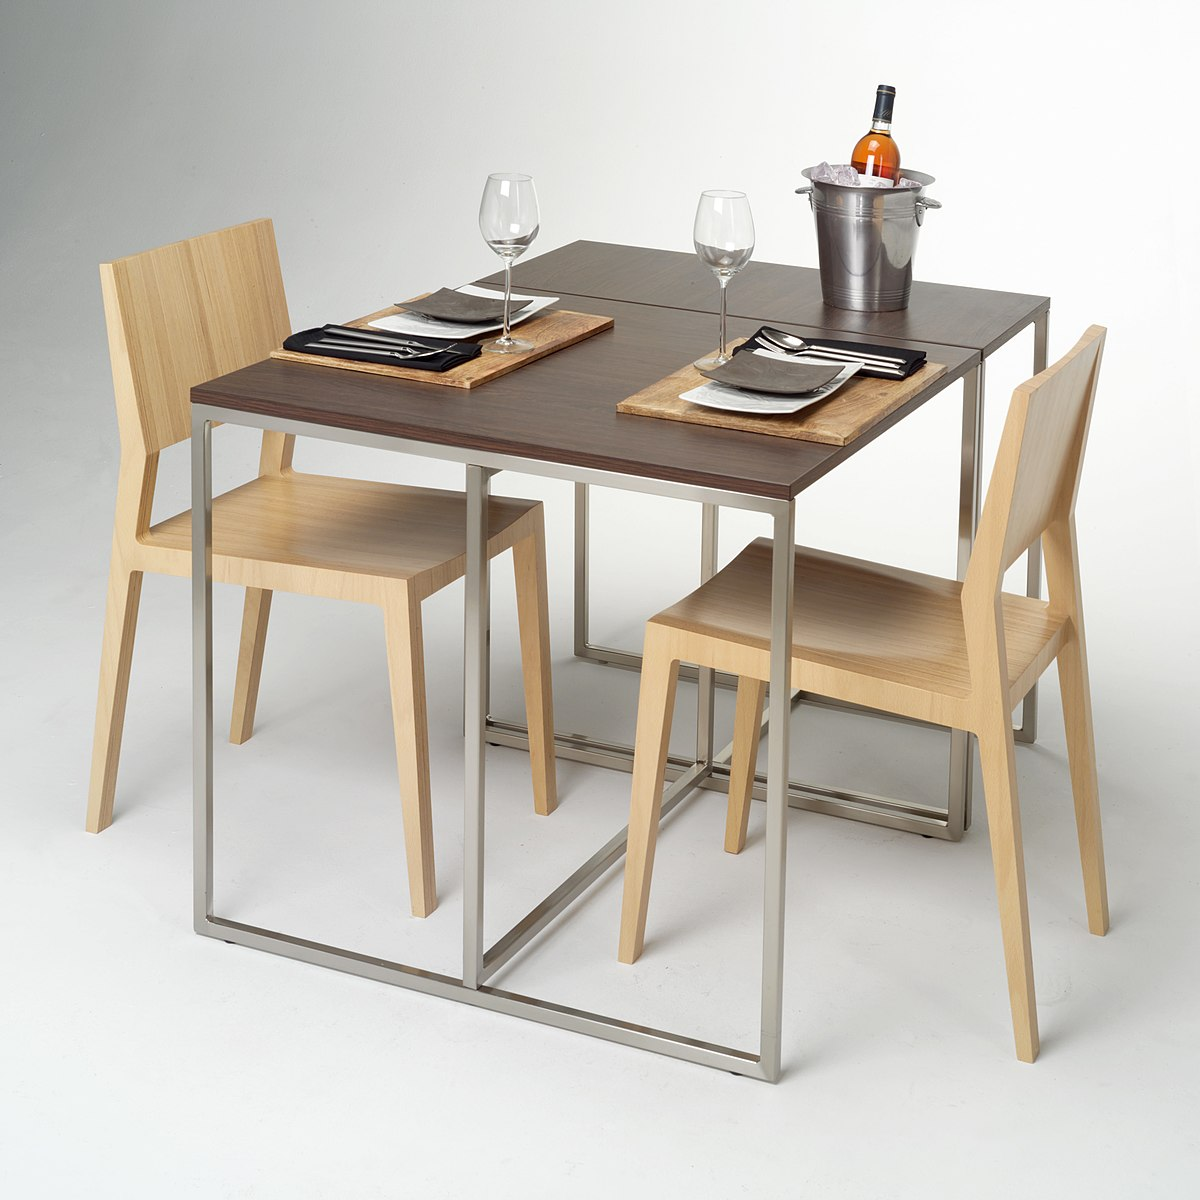 function furniture. function furniture u